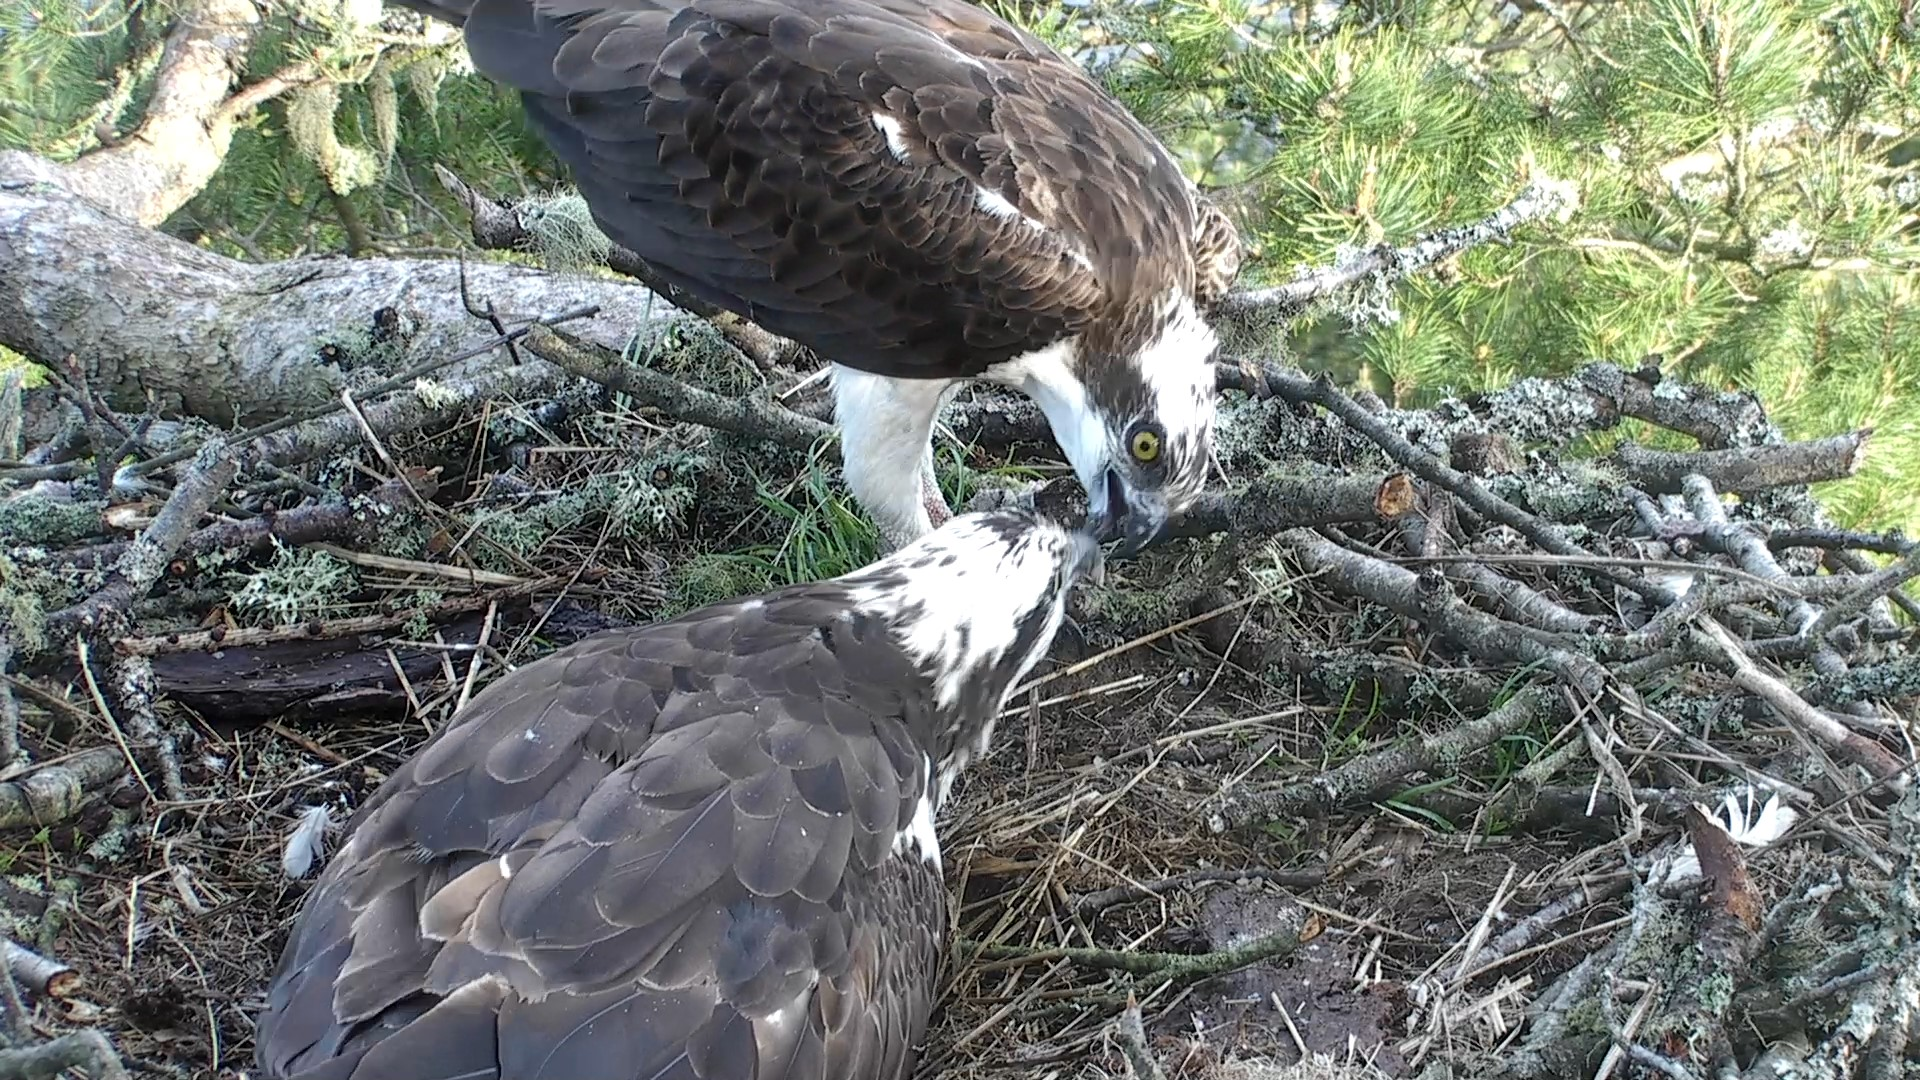 LF15 being delicately fed by LM12 © Scottish Wildlife Trust